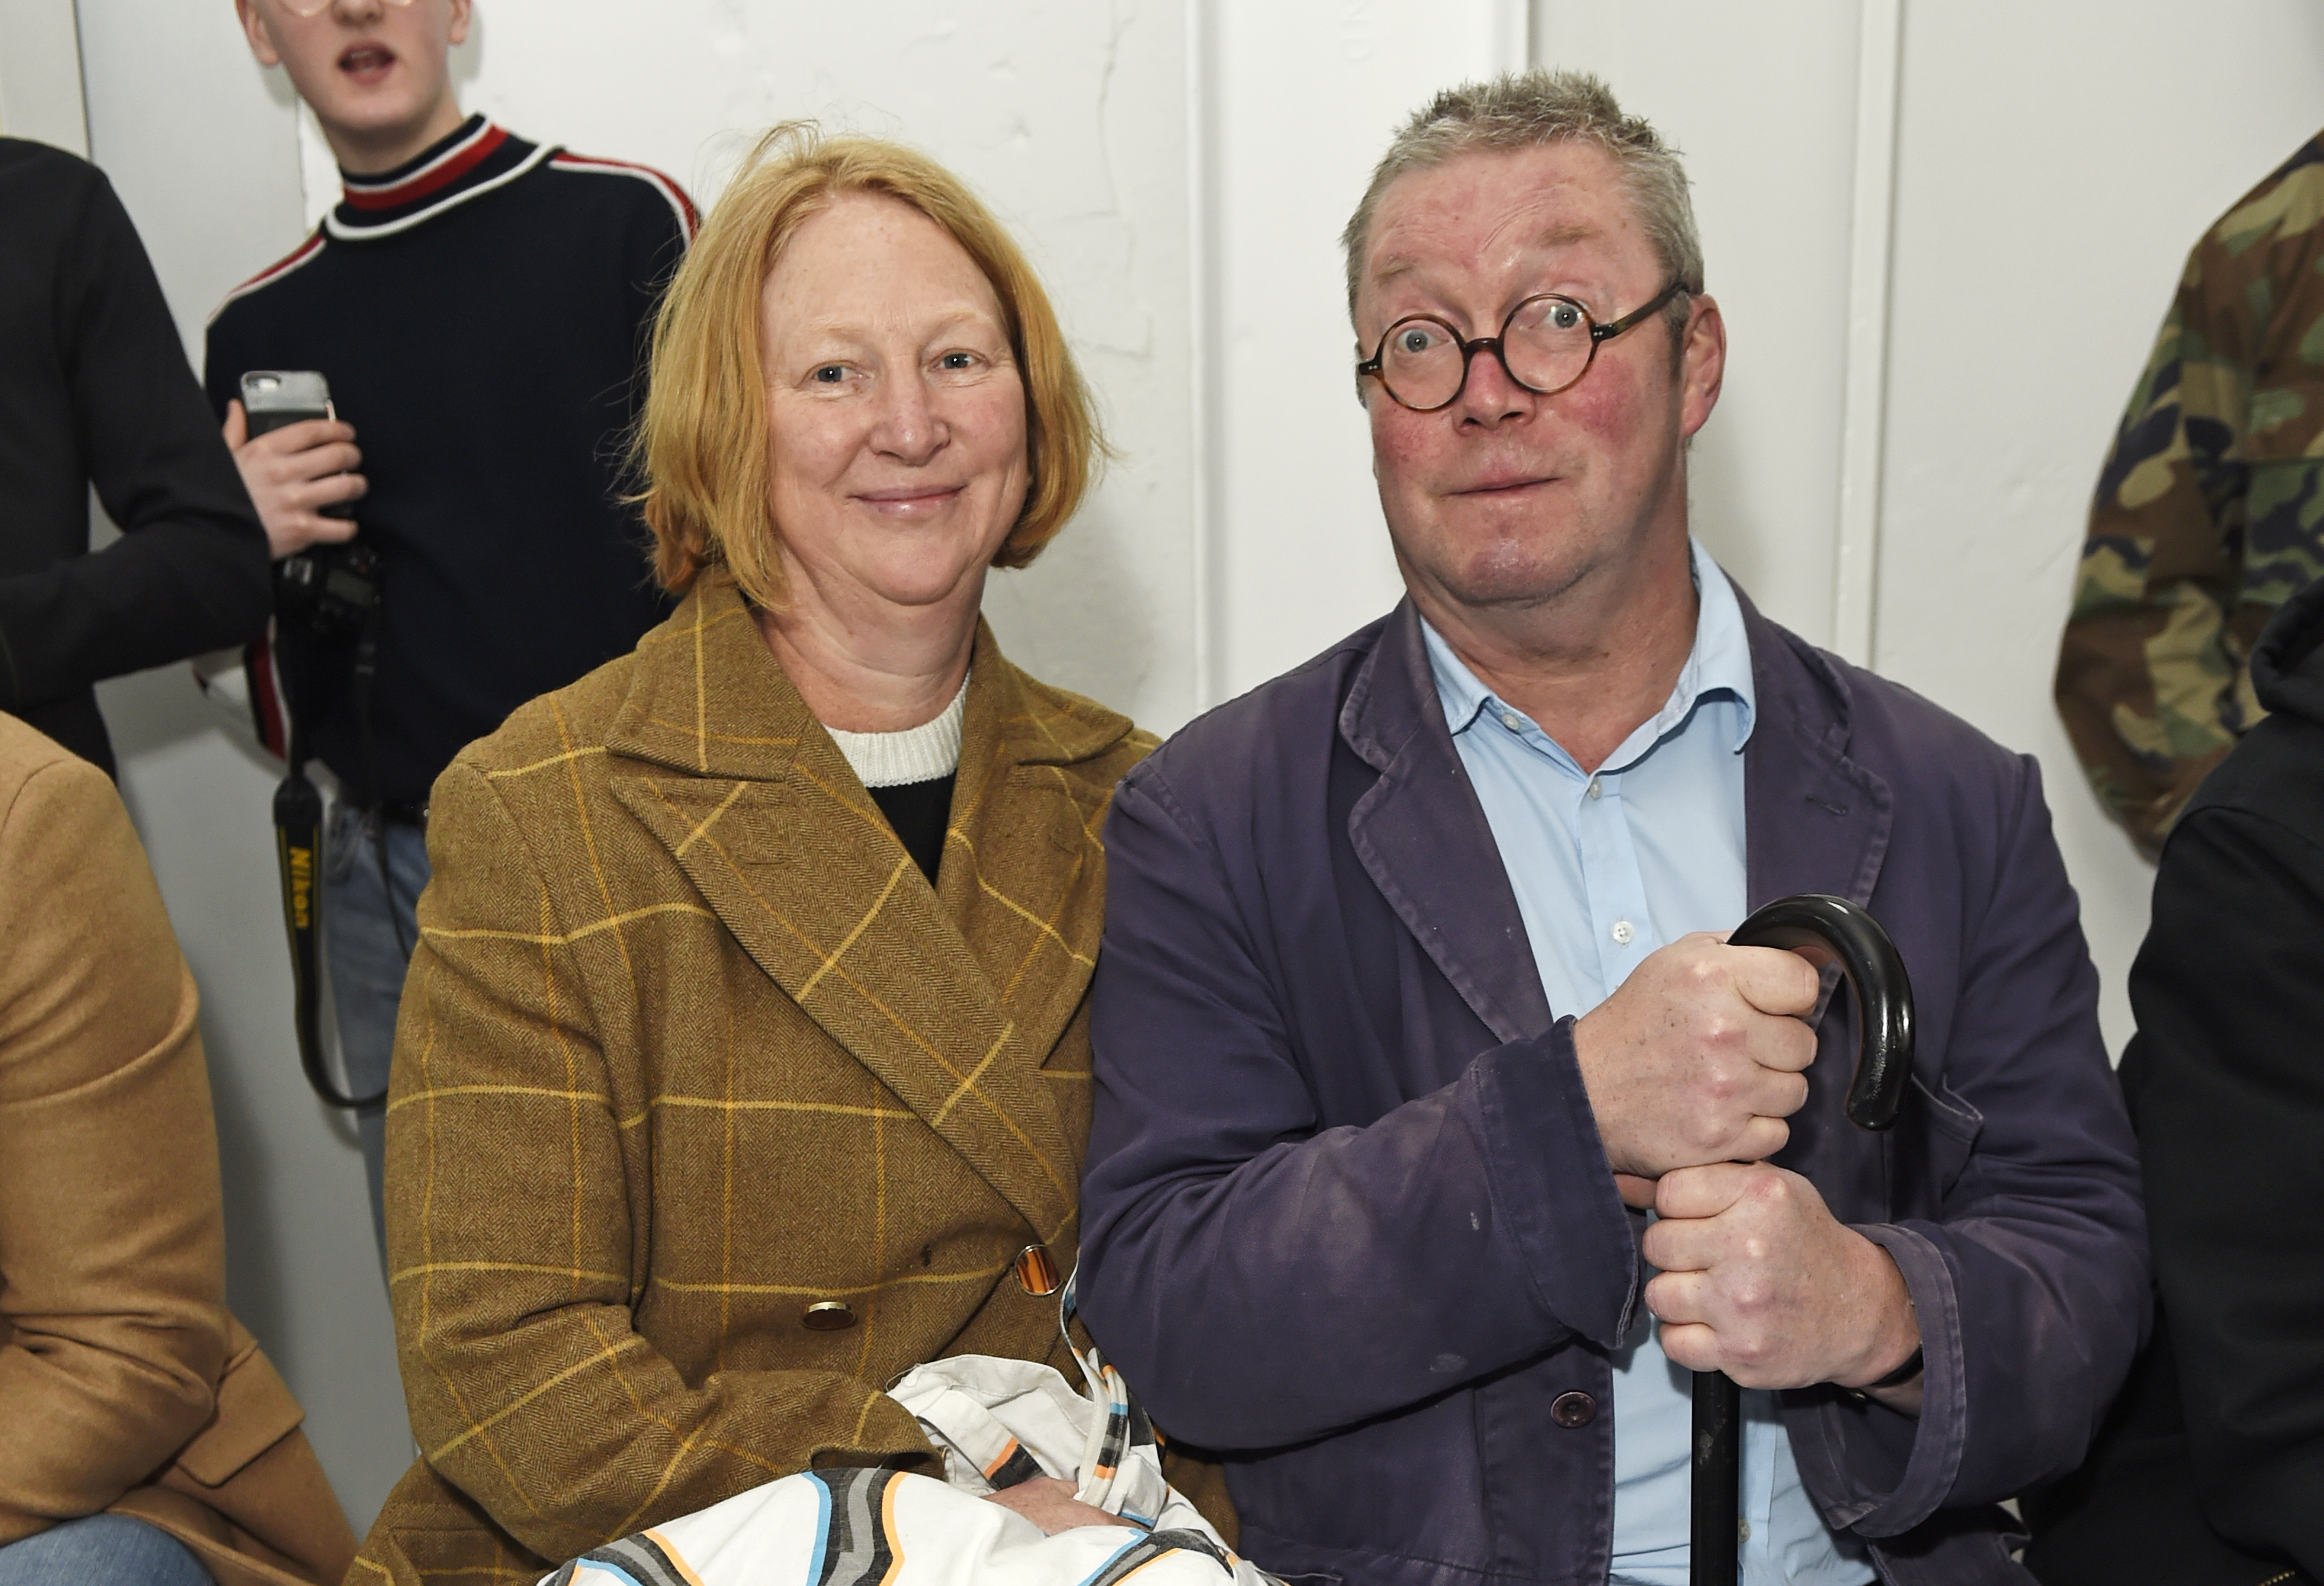 Margot Henderson, left, and Fergus Henderson, right